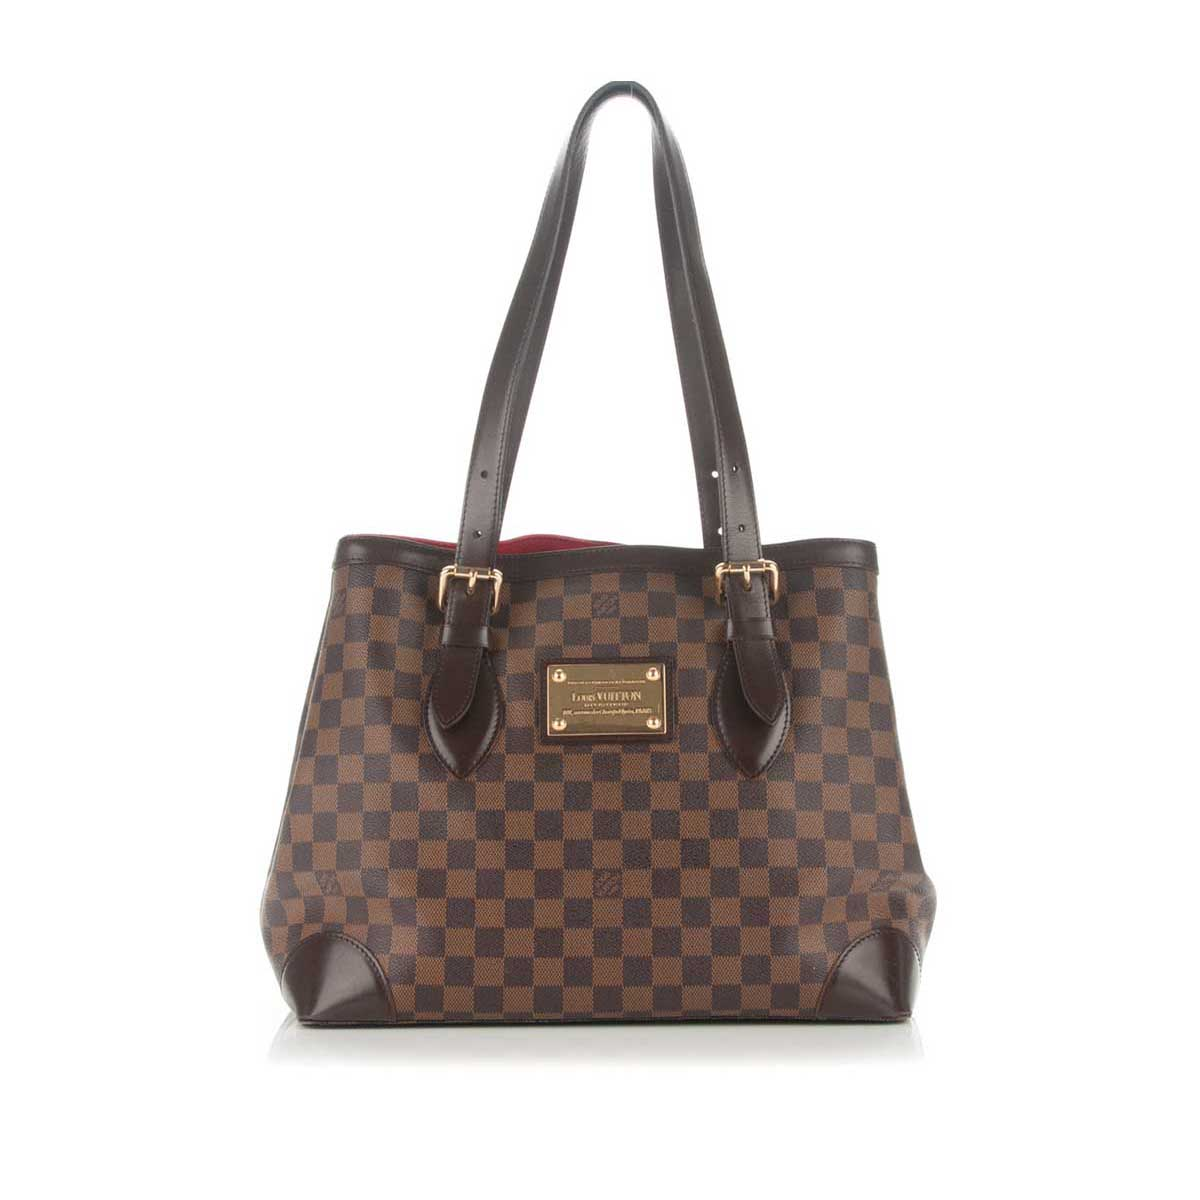 346e729834ce LOUIS VUITTON Damier Ebene Hampstead MM - New